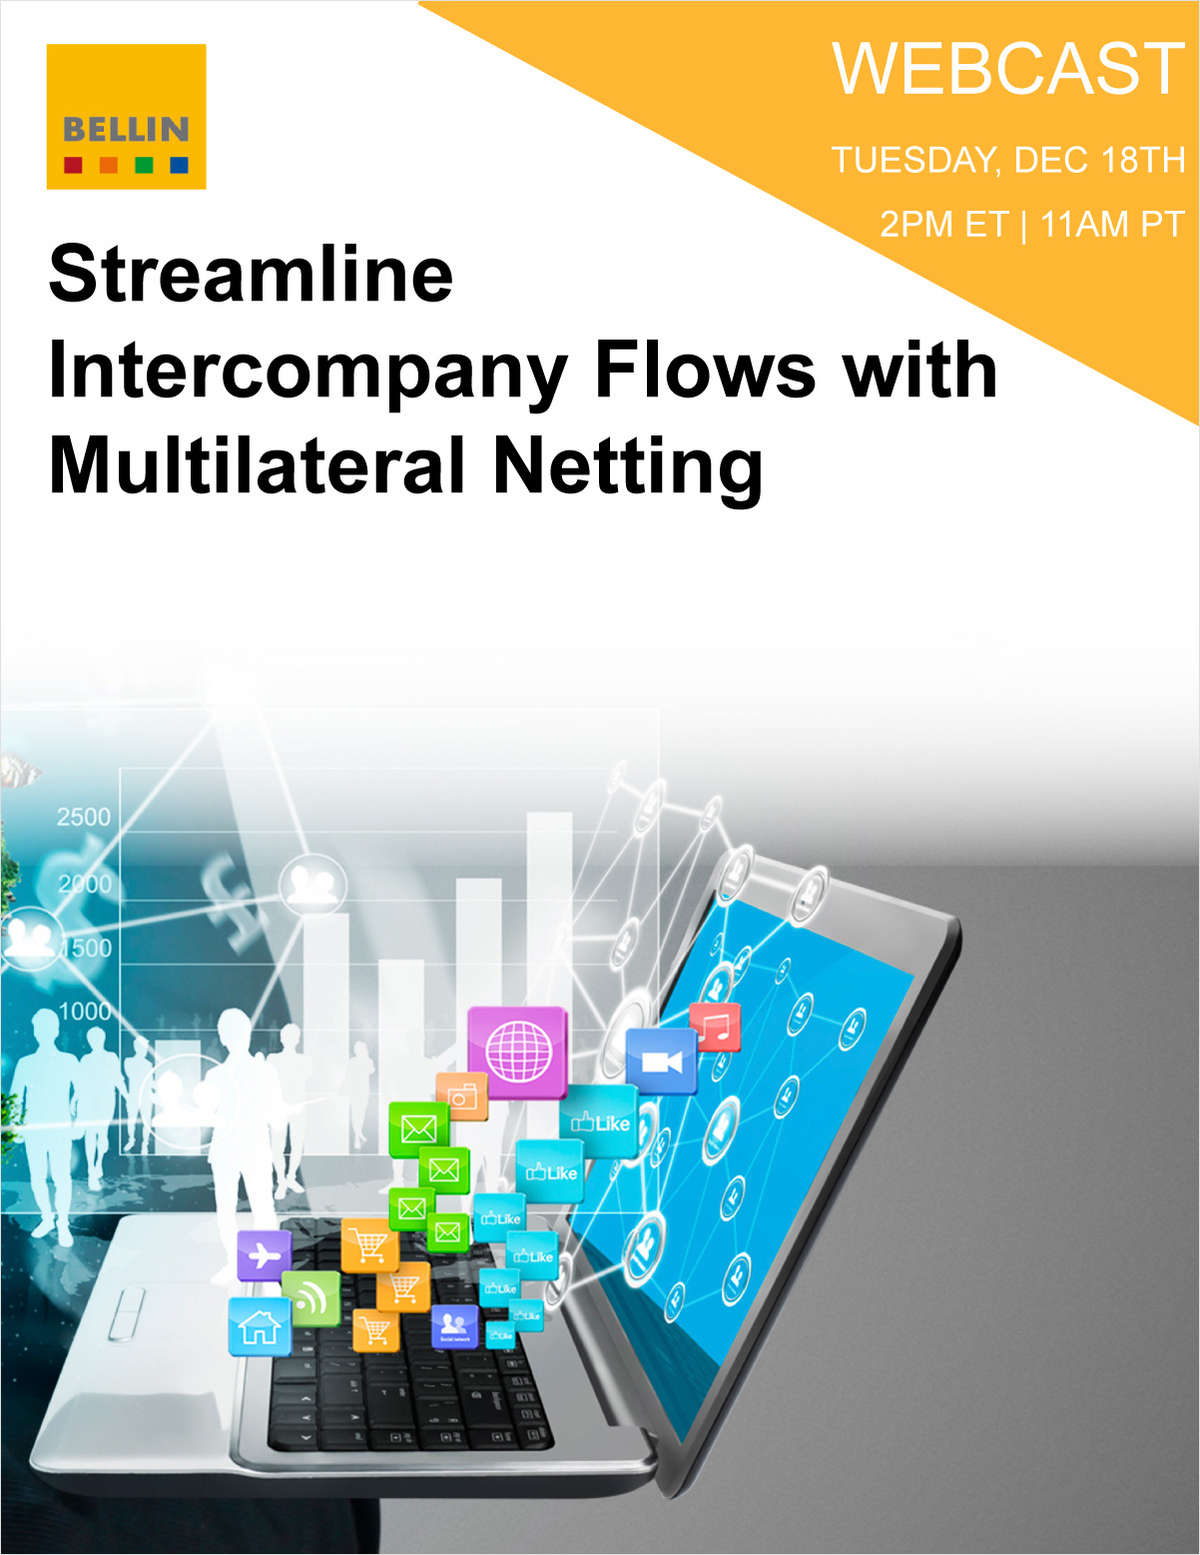 Streamline Intercompany Flows with Multilateral Netting